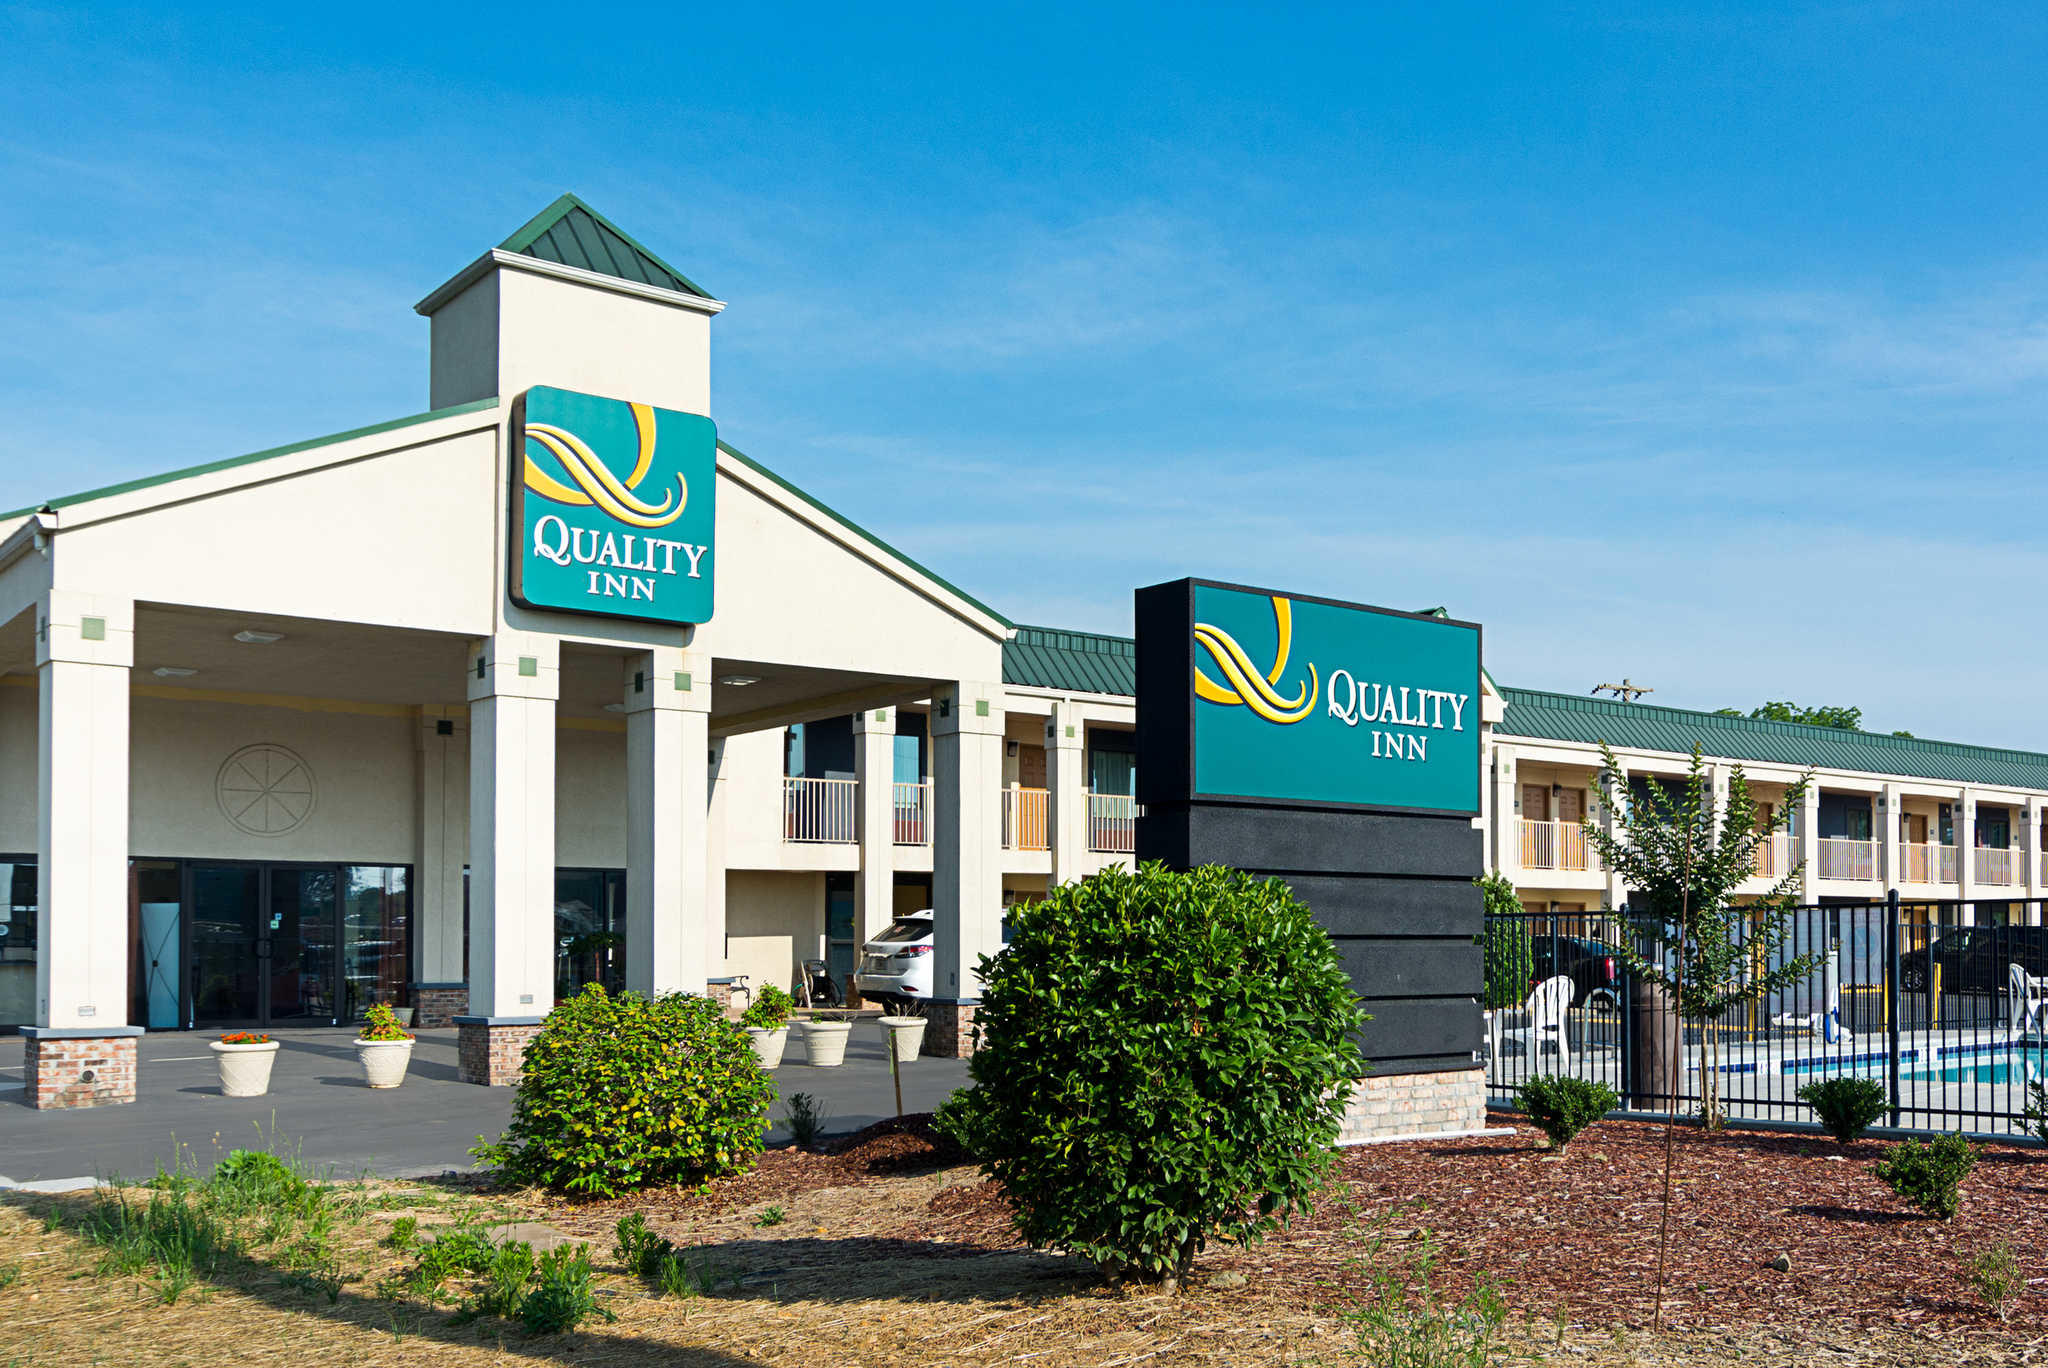 Quality Inn makes it easy to find affordable comfort when you travel. The Choice Hotels brand offers inexpensive rooms with Serta beds, high-speed internet access, and hot breakfasts at no extra charge at more than a thousand locations around the globe. Stay for less with Quality Inn coupon codes at destinations including.